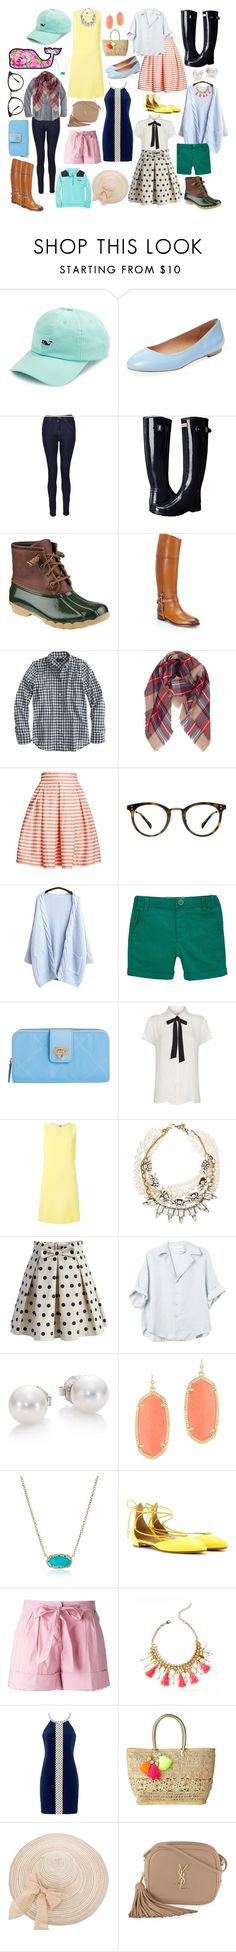 """MAXXAM What to Wear Magazine // Preppy"" by thekendallapproach on Polyvore featuring Vineyard Vines, Elorie, J Brand, Hunter, Sperry, Ralph Lauren, J.Crew, Humble Chic, Rumour London and Ace"